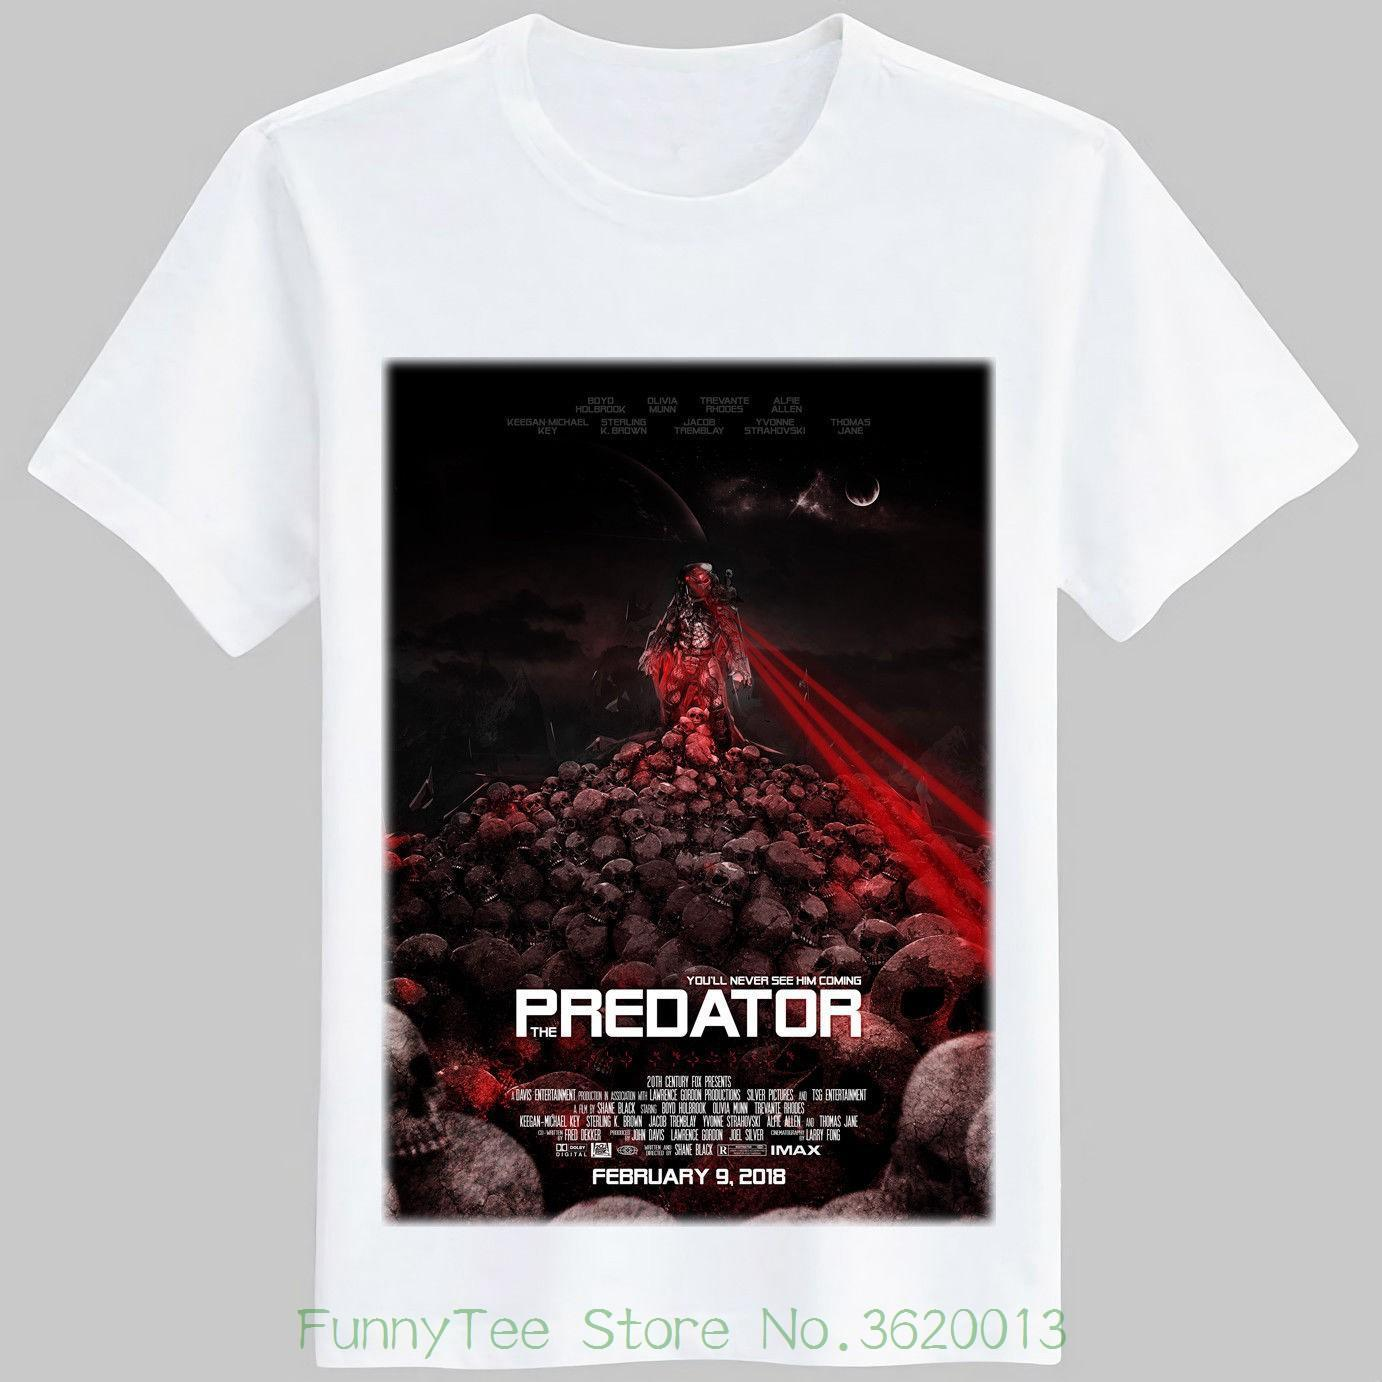 f80f3aa93 The Predator Movie 2018 Poster T Shirt S M L Xl 2xl Order Tee Shirts T Shirt  With Design From Jie027, $14.67| DHgate.Com